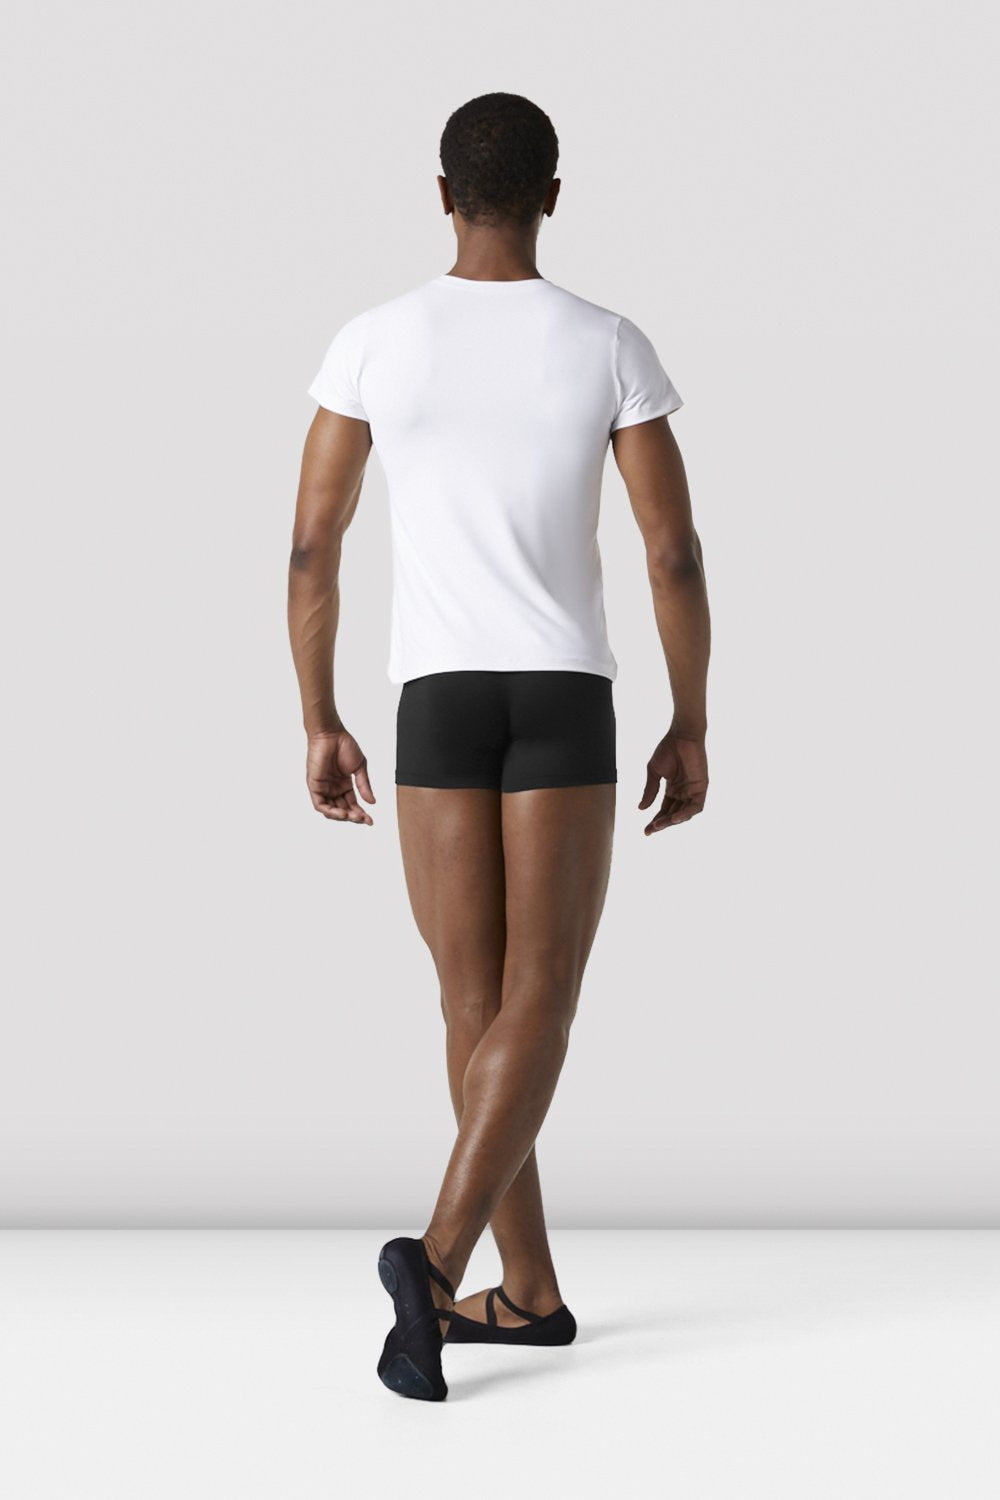 shorts with tights mens